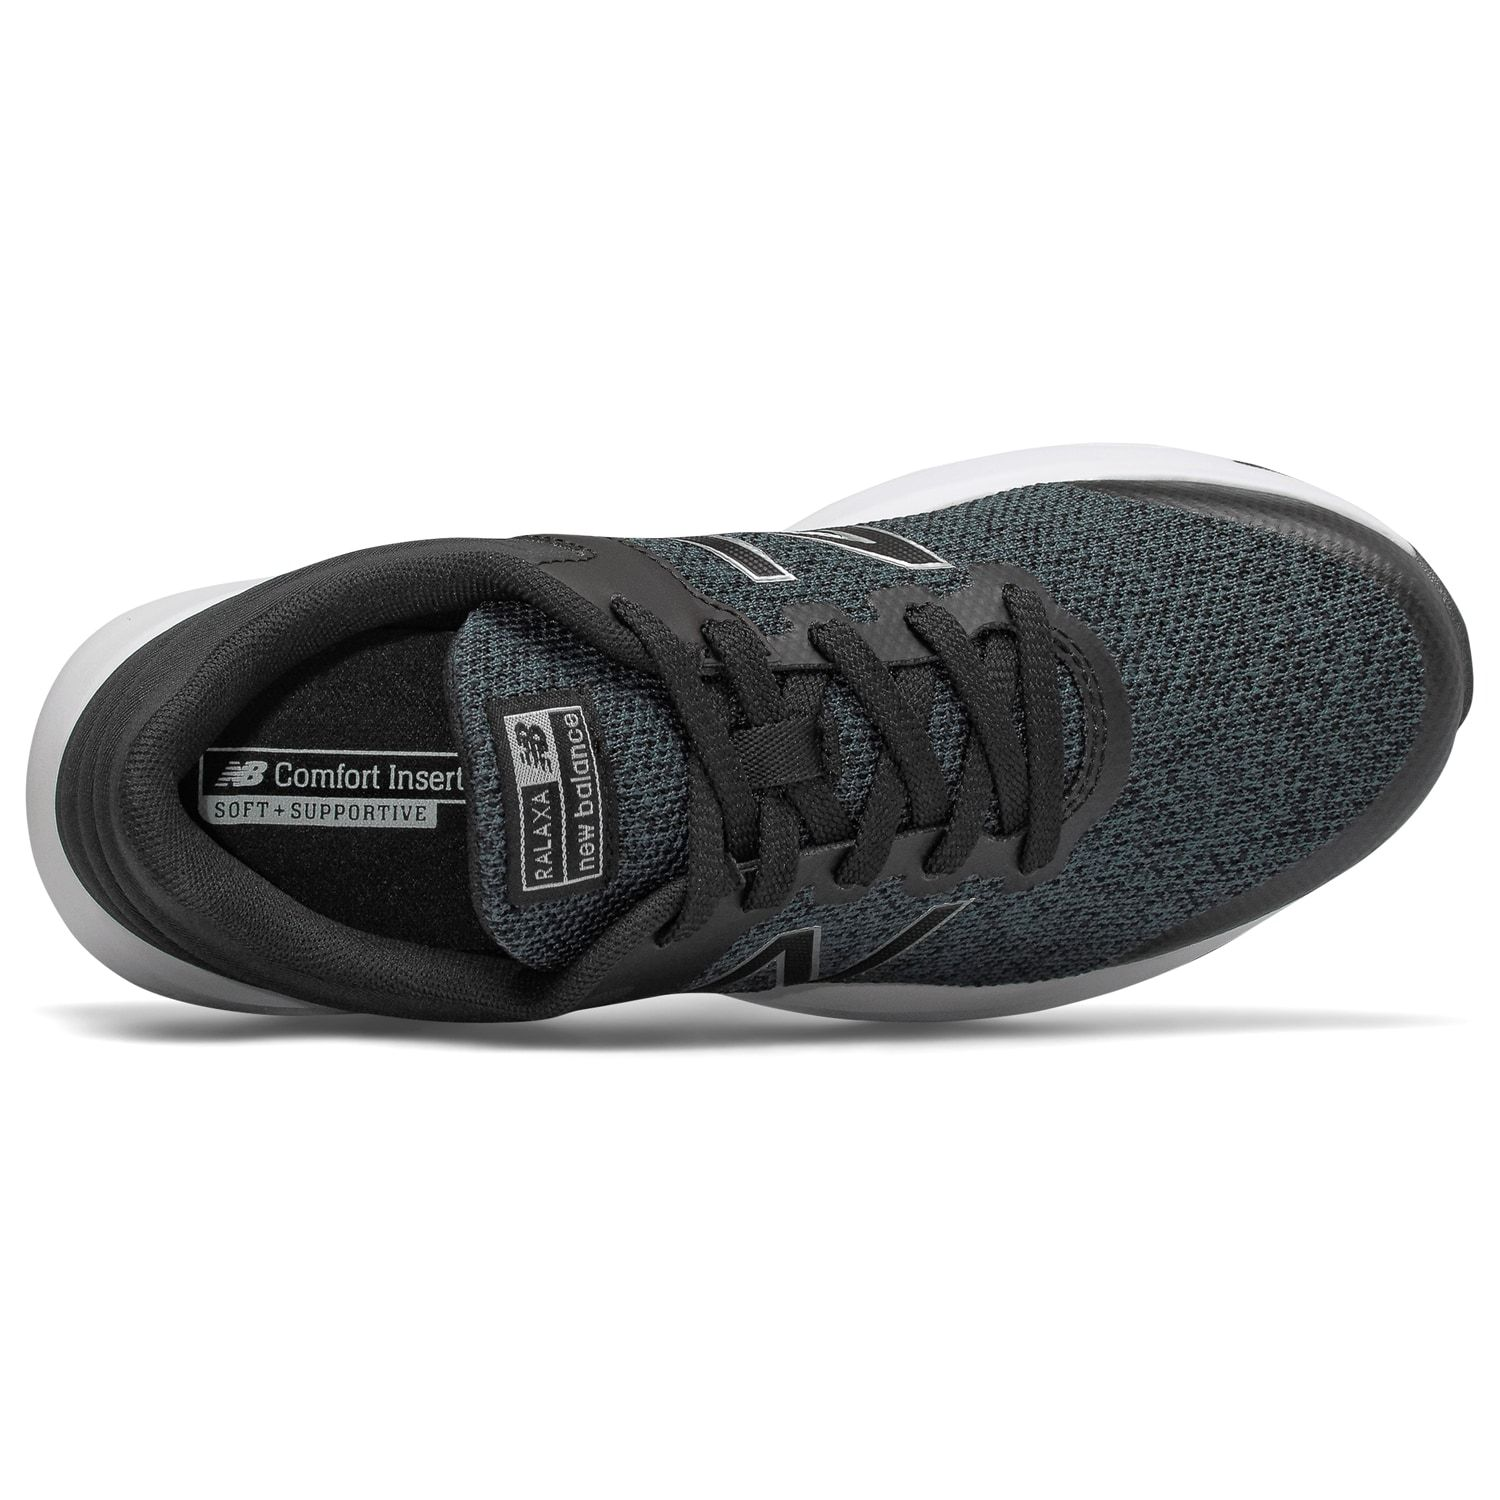 Womens sneakers, Sneakers, Shoe features